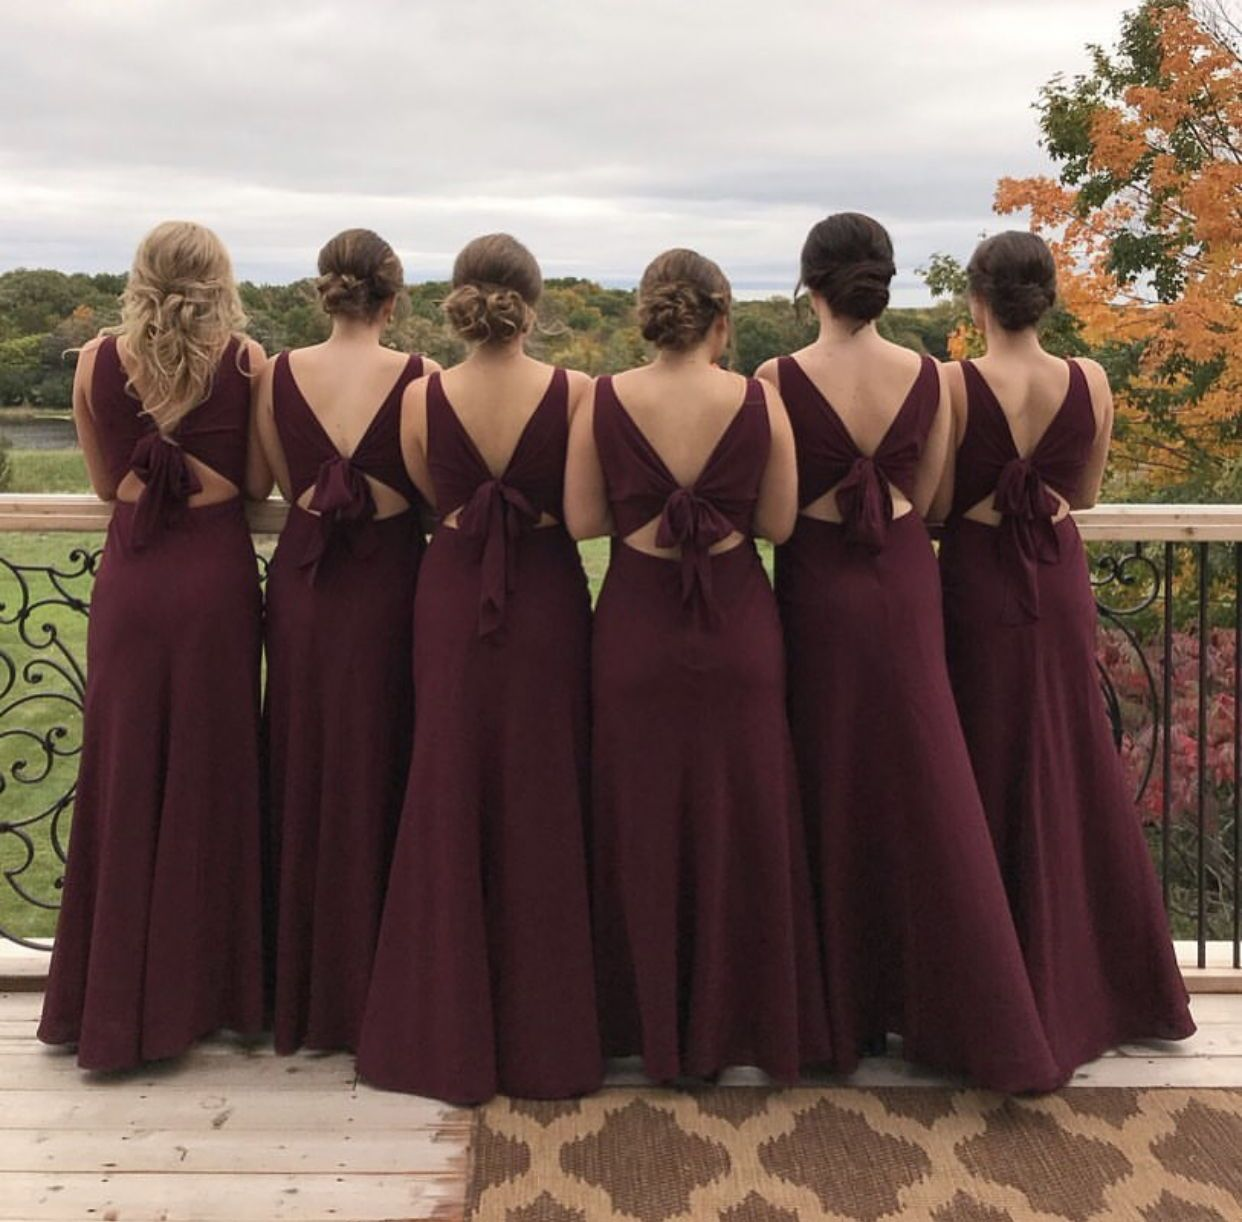 d4cdc780552 Back Bows for the win! Jenny Yoo Bridesmaids